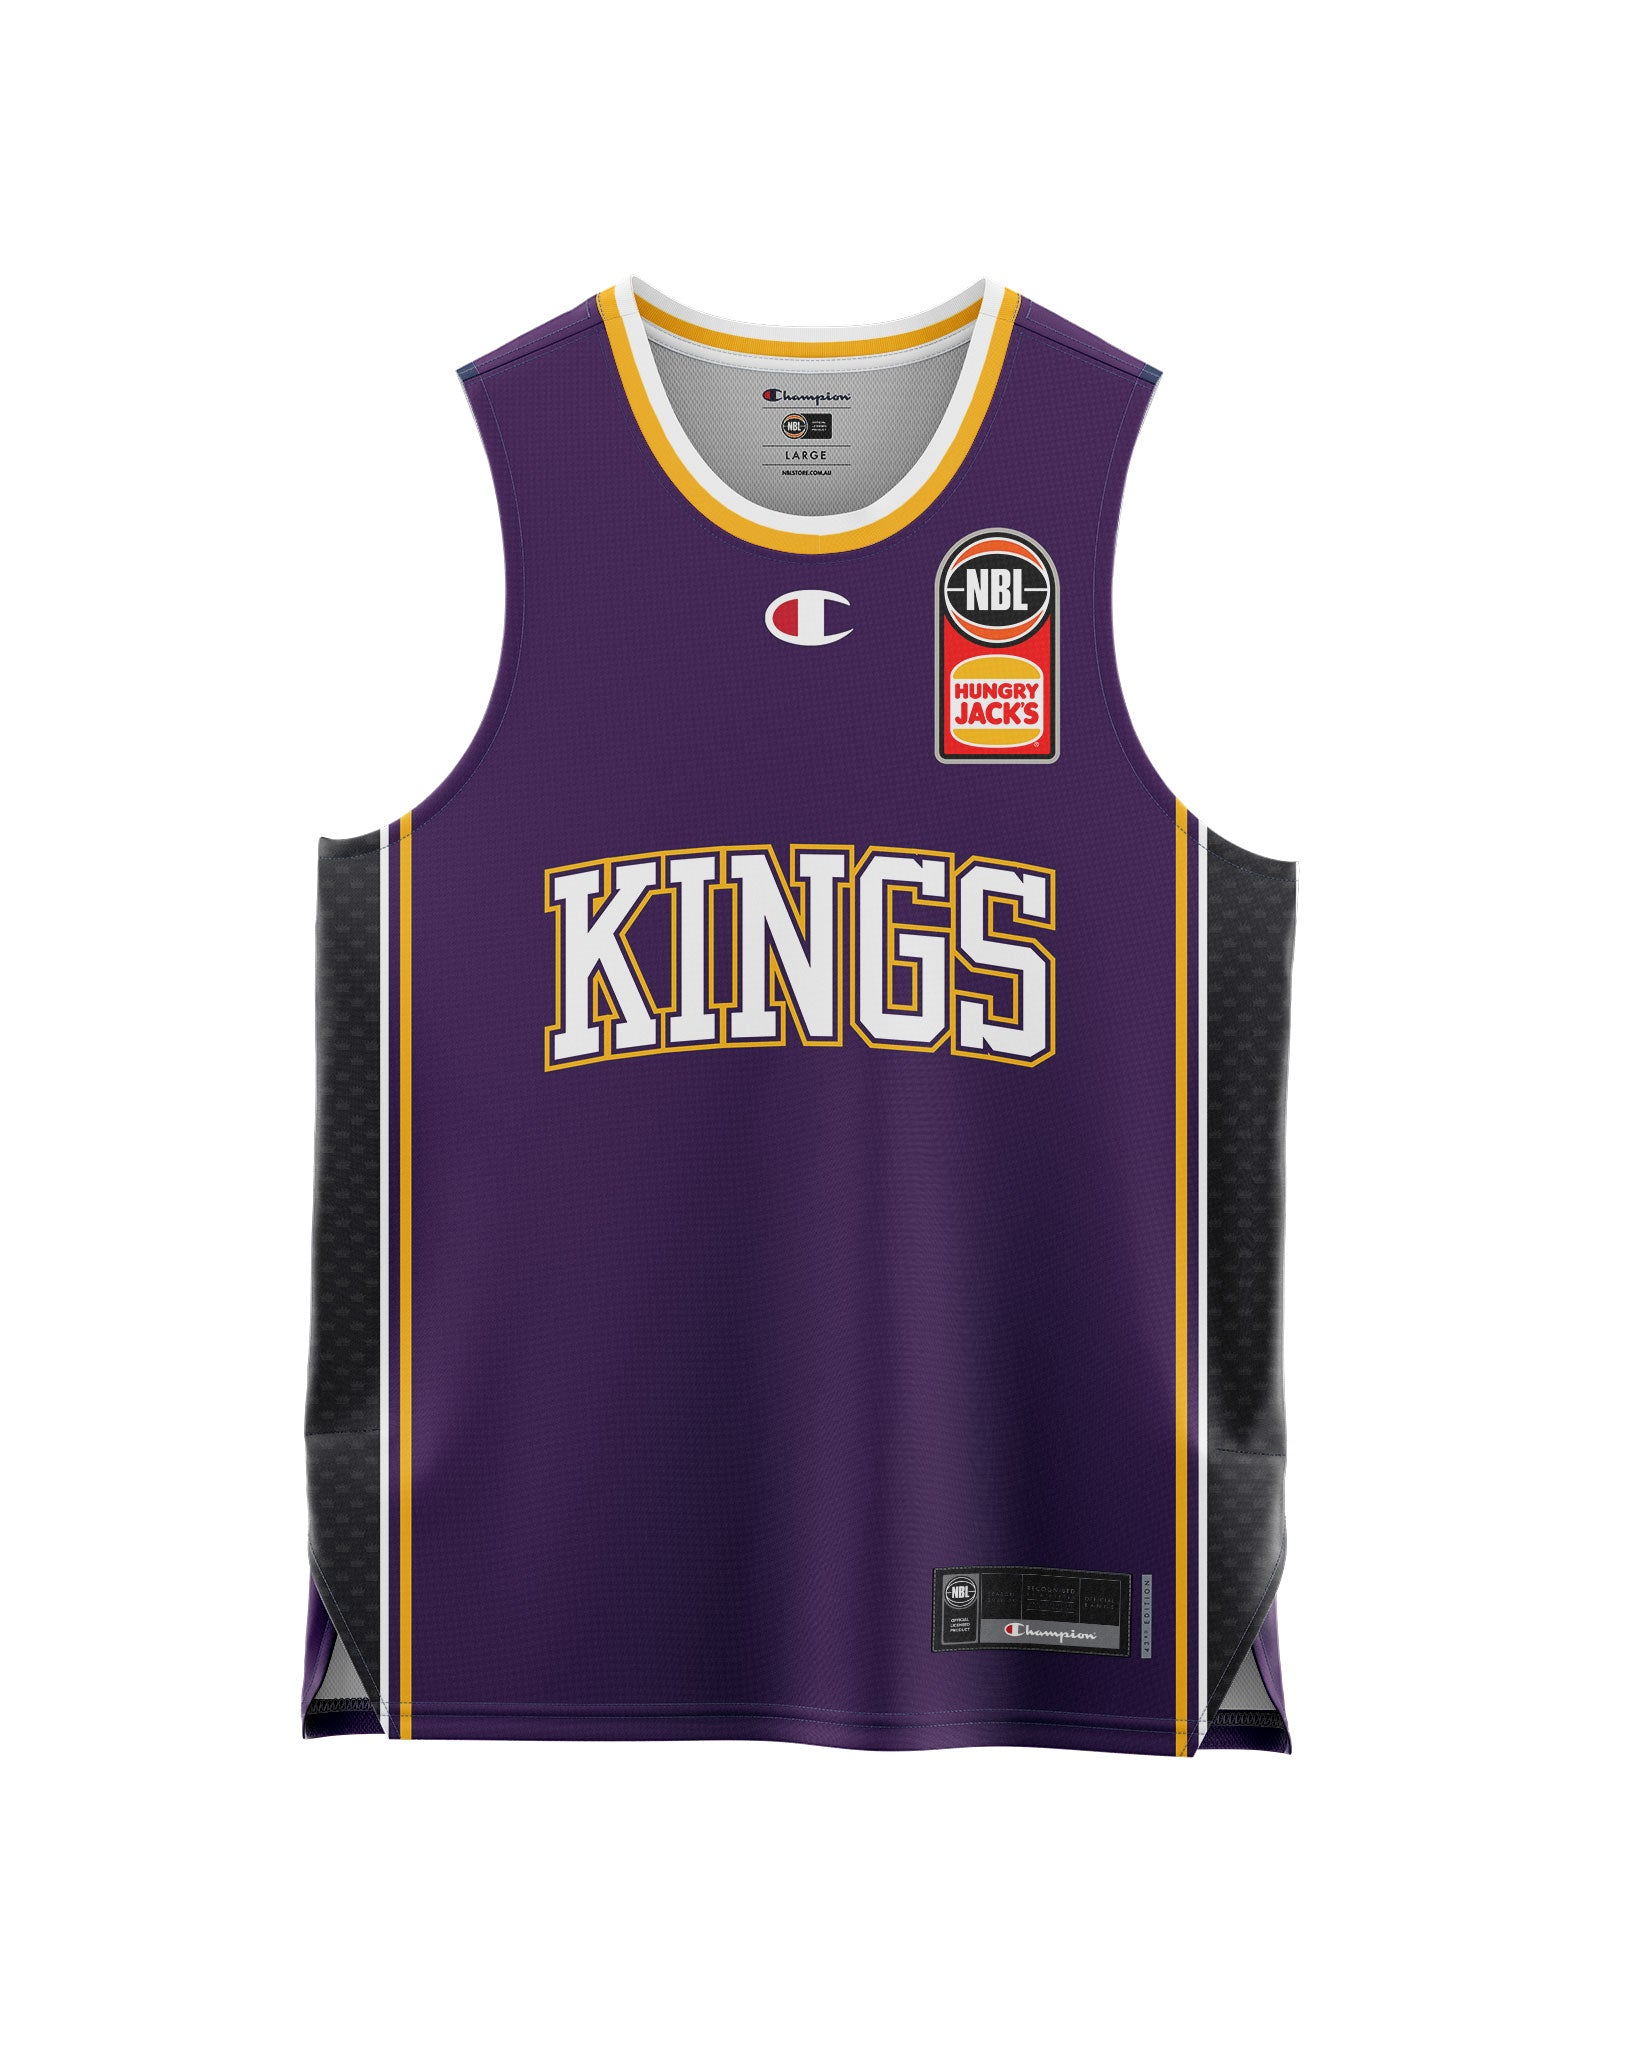 Sydney Kings 20/21 Youth Authentic Home Jersey